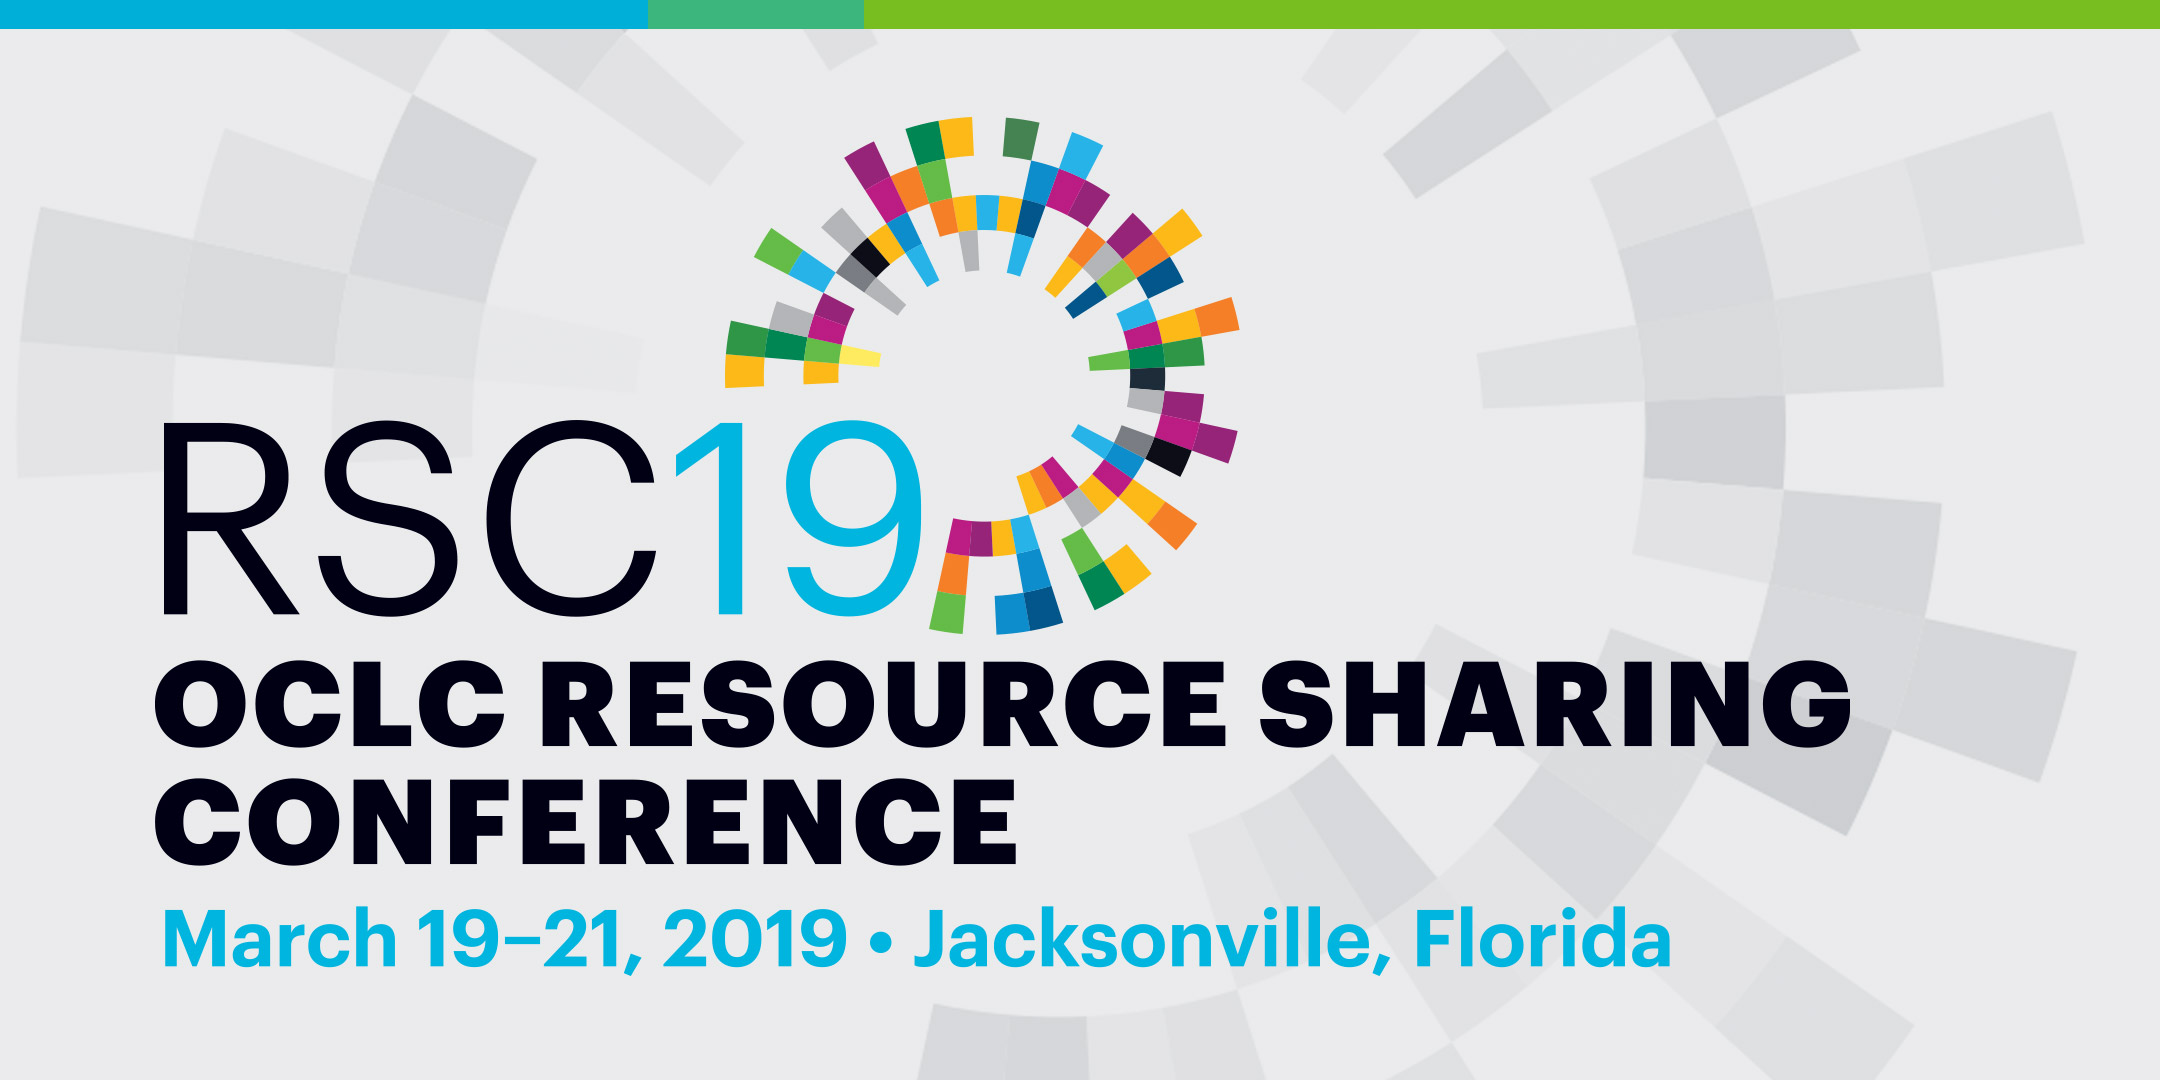 OCLC Resource Sharing Conference 2019: Agenda